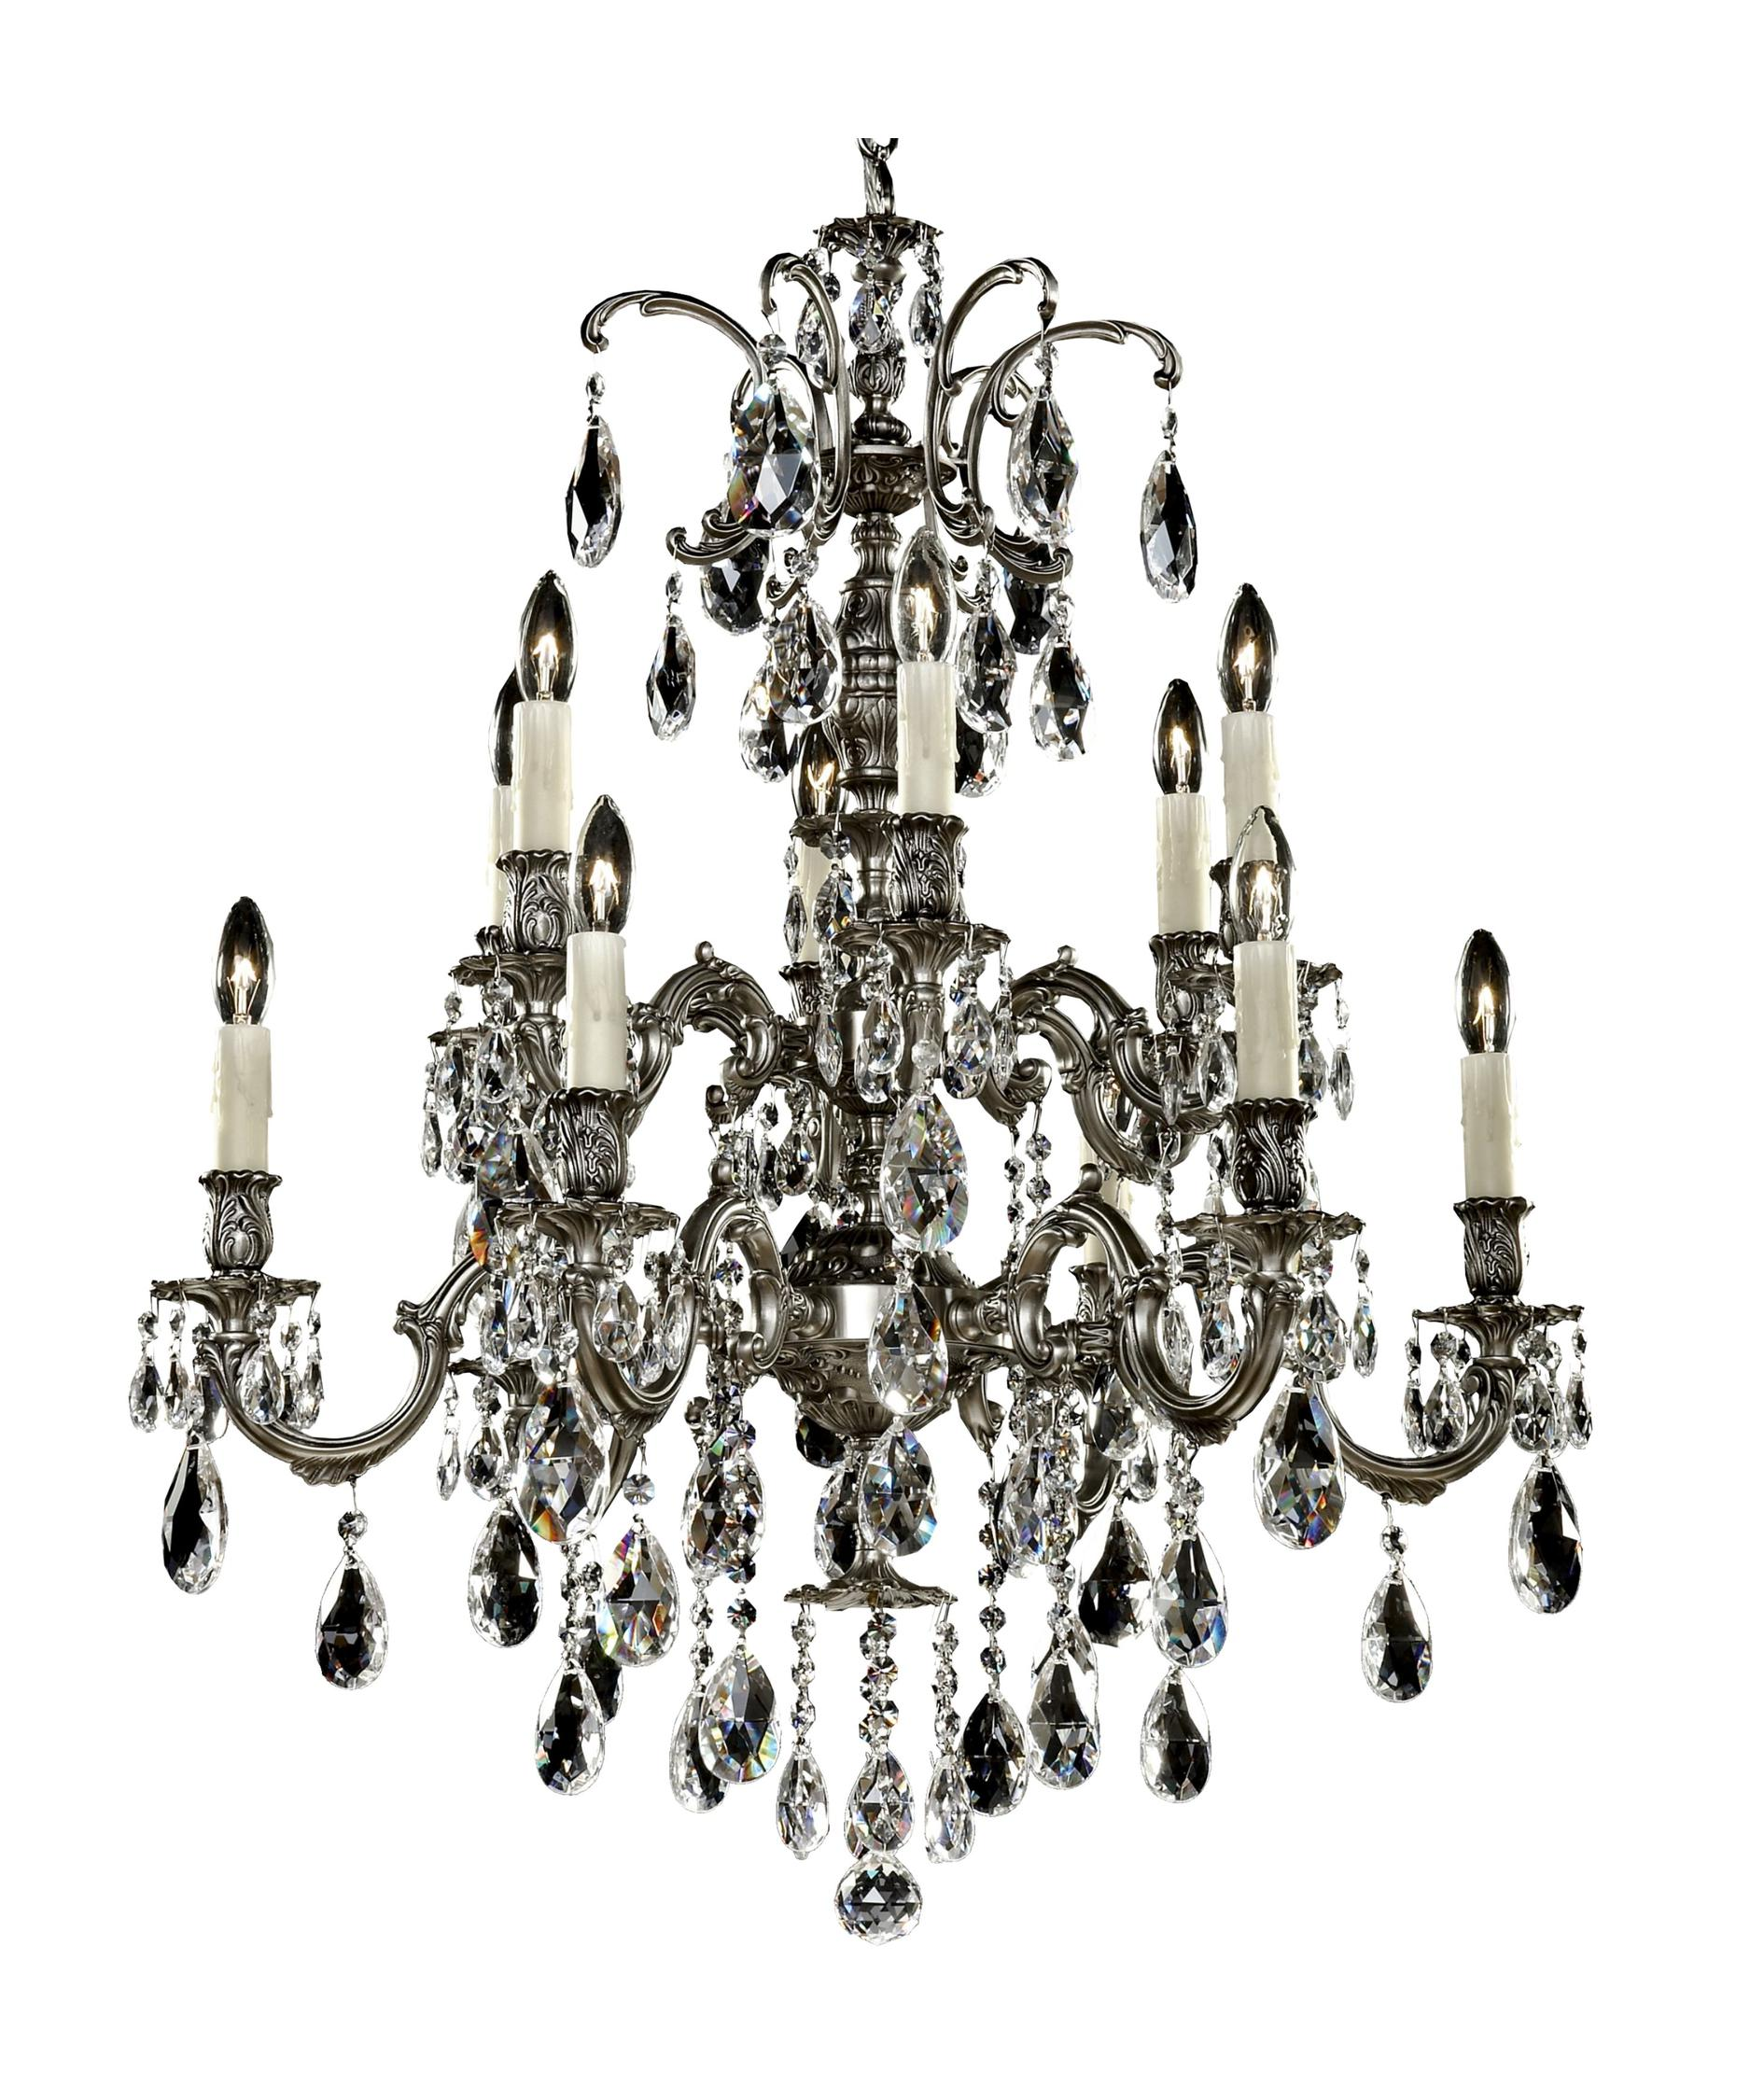 American Brass and Crystal Marlena 27 Inch Wide 66 Light – American Brass and Crystal Chandeliers